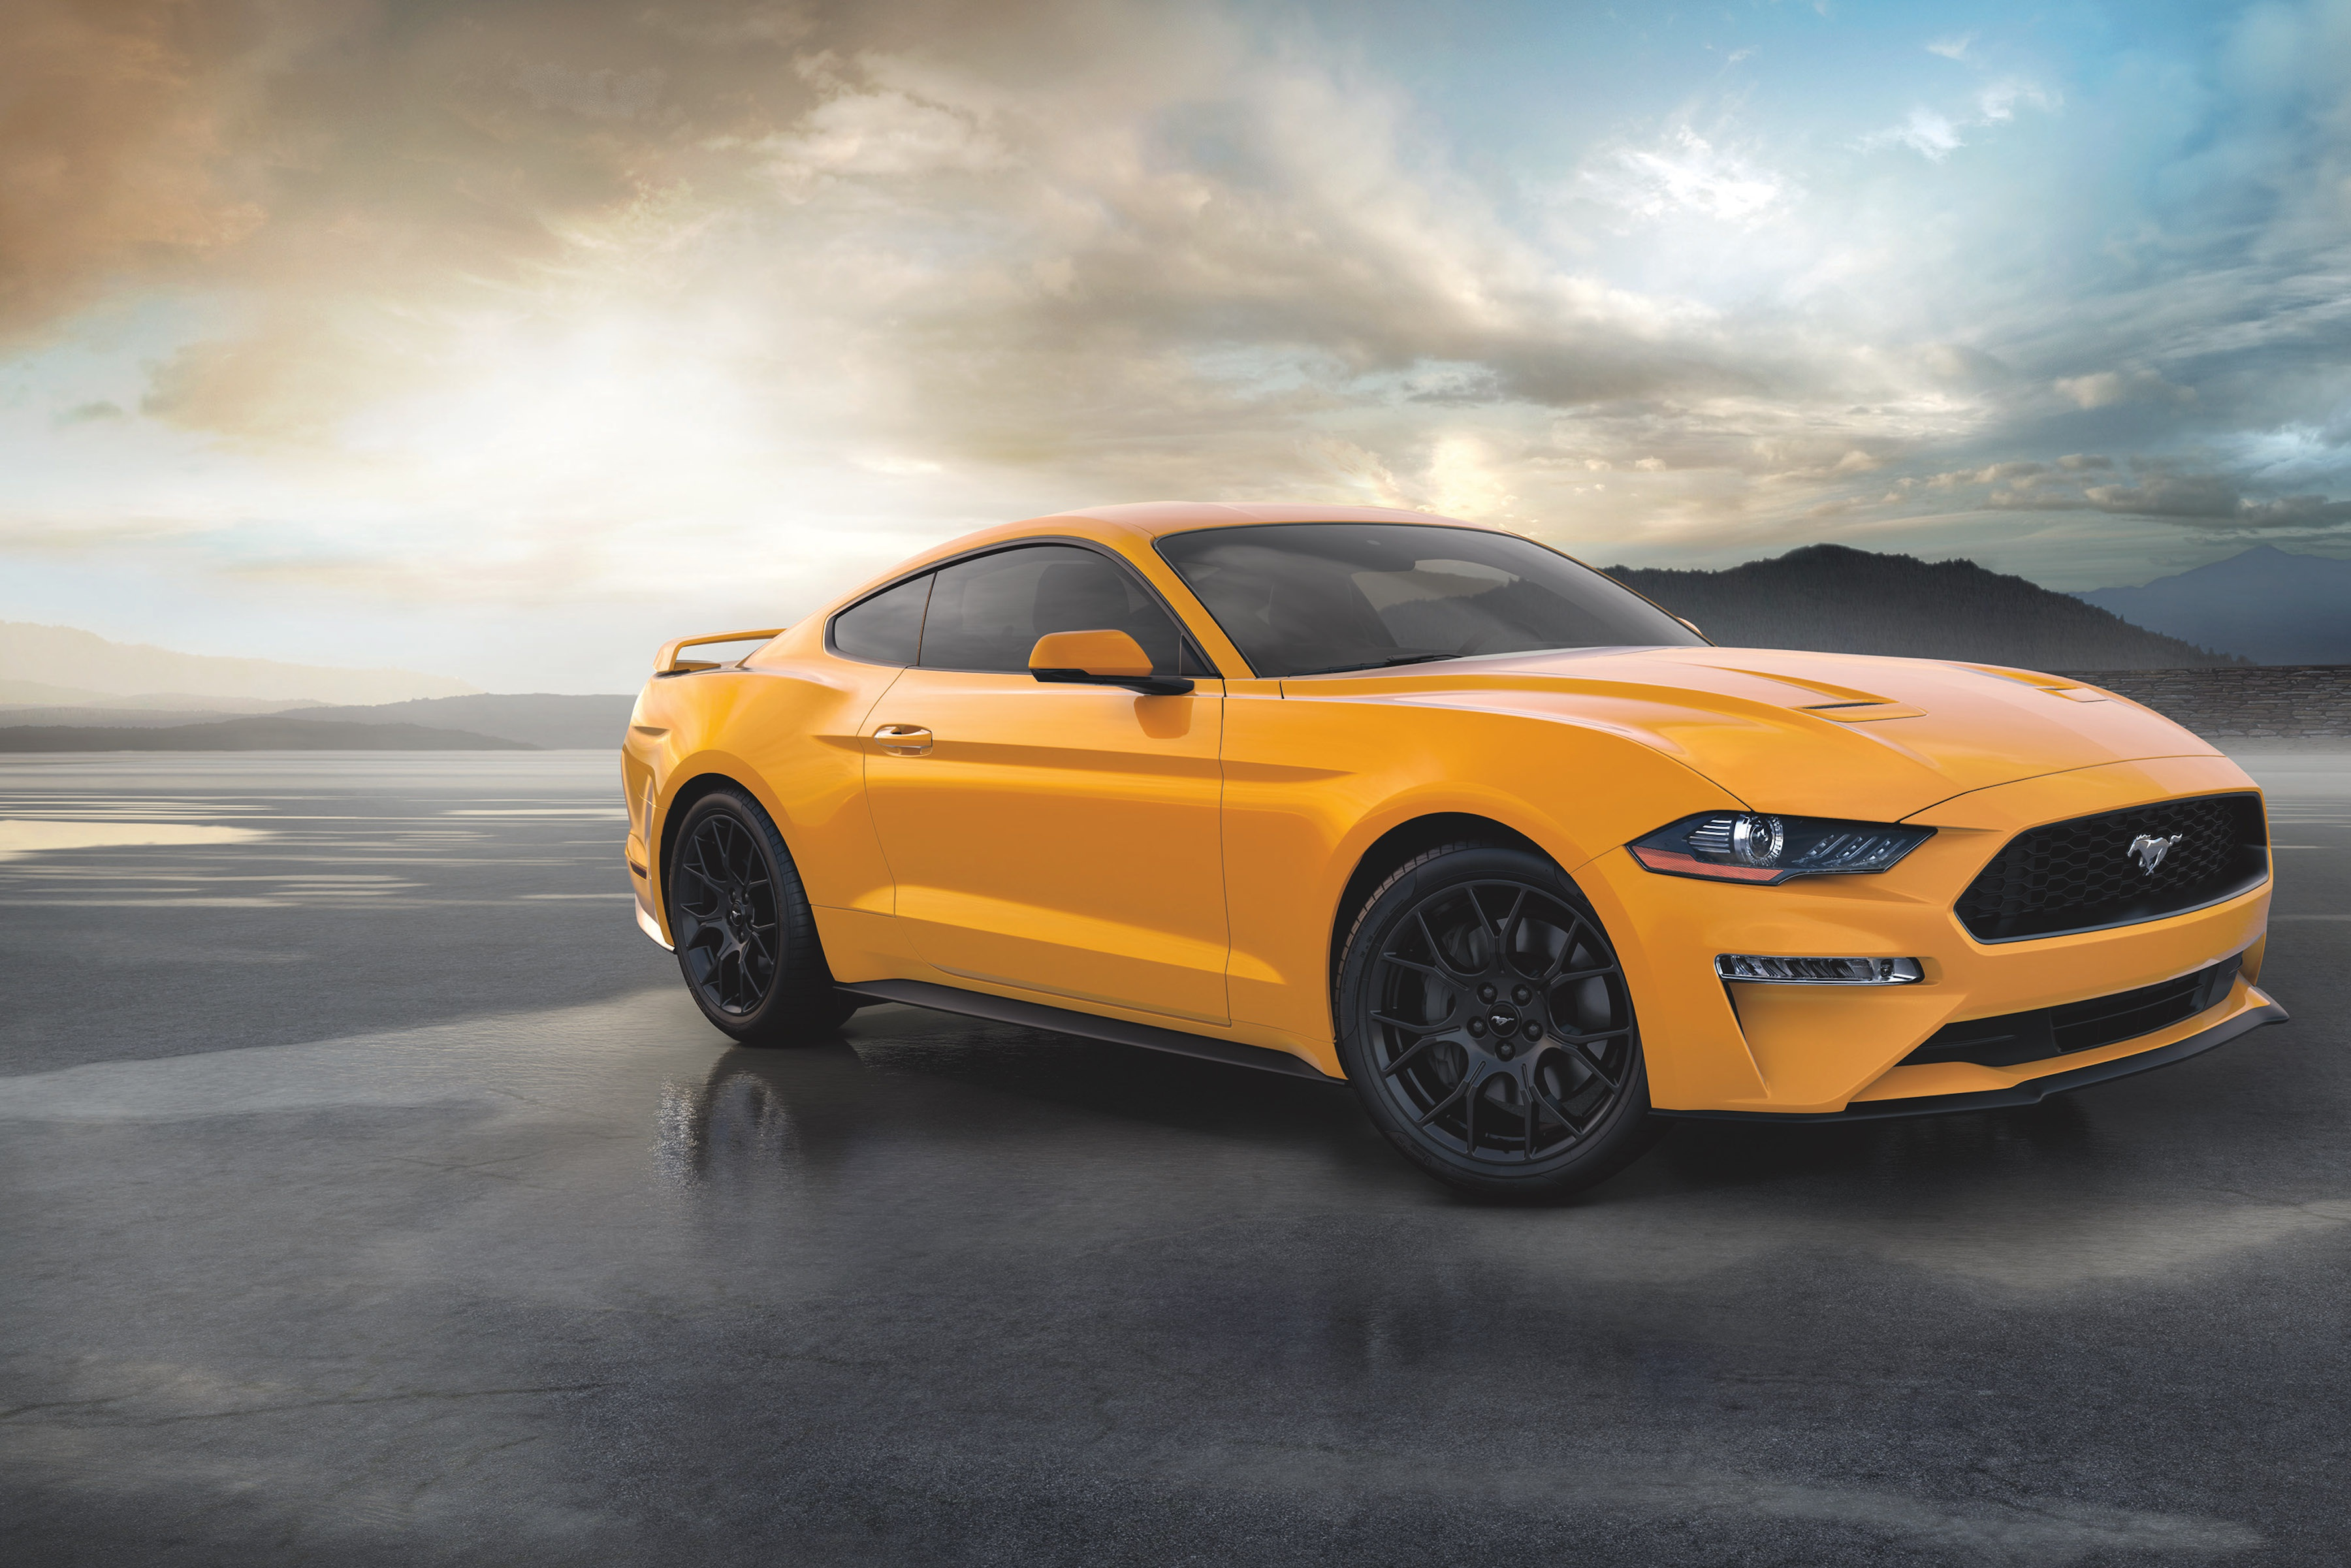 Car Ford Ford Mustang Muscle Car Orange Car Vehicle 3600x2401